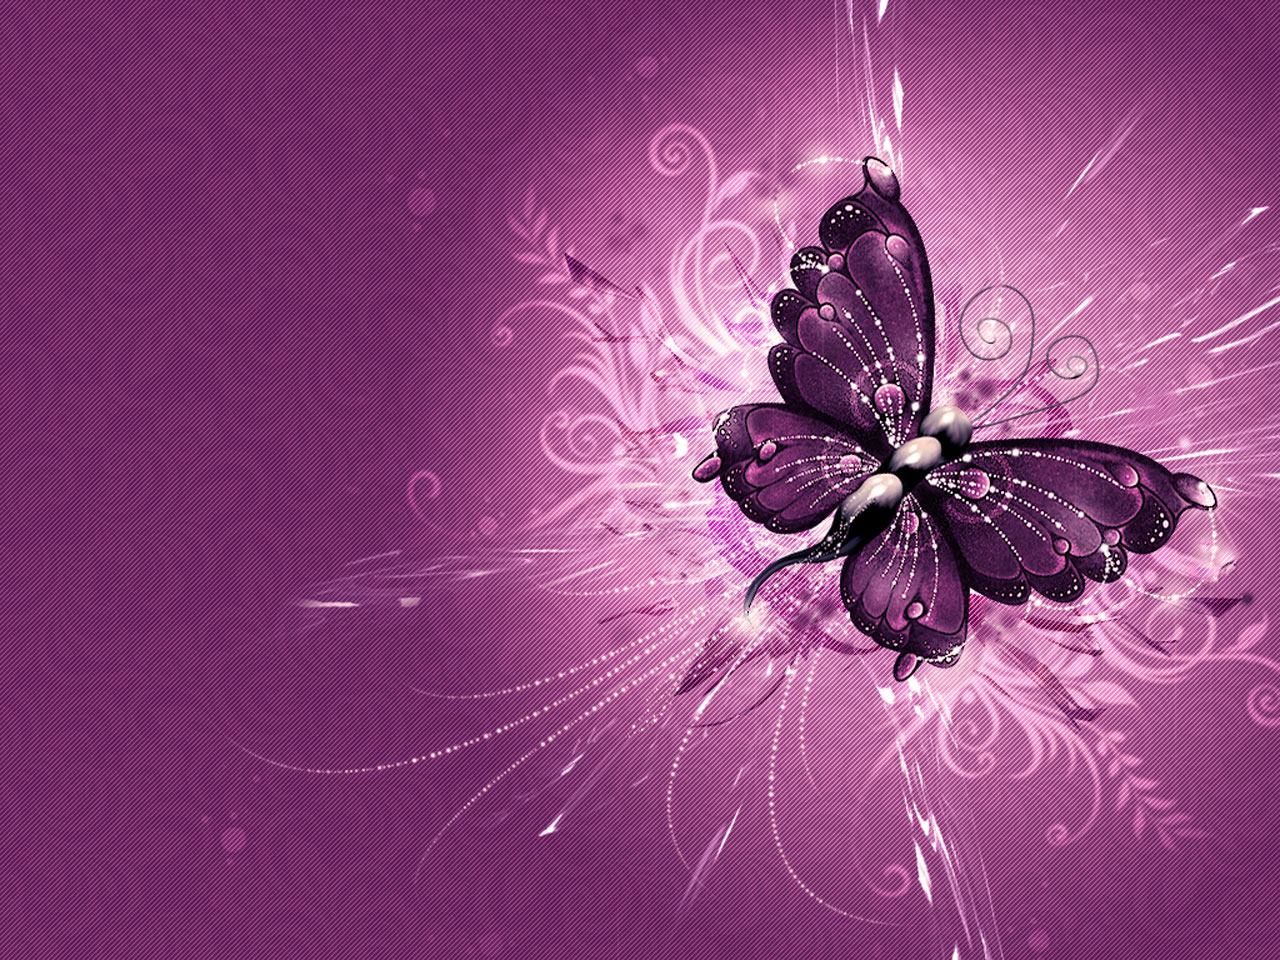 Get Wallpaper Purple and make this wallpaper for your desktop 1280x960